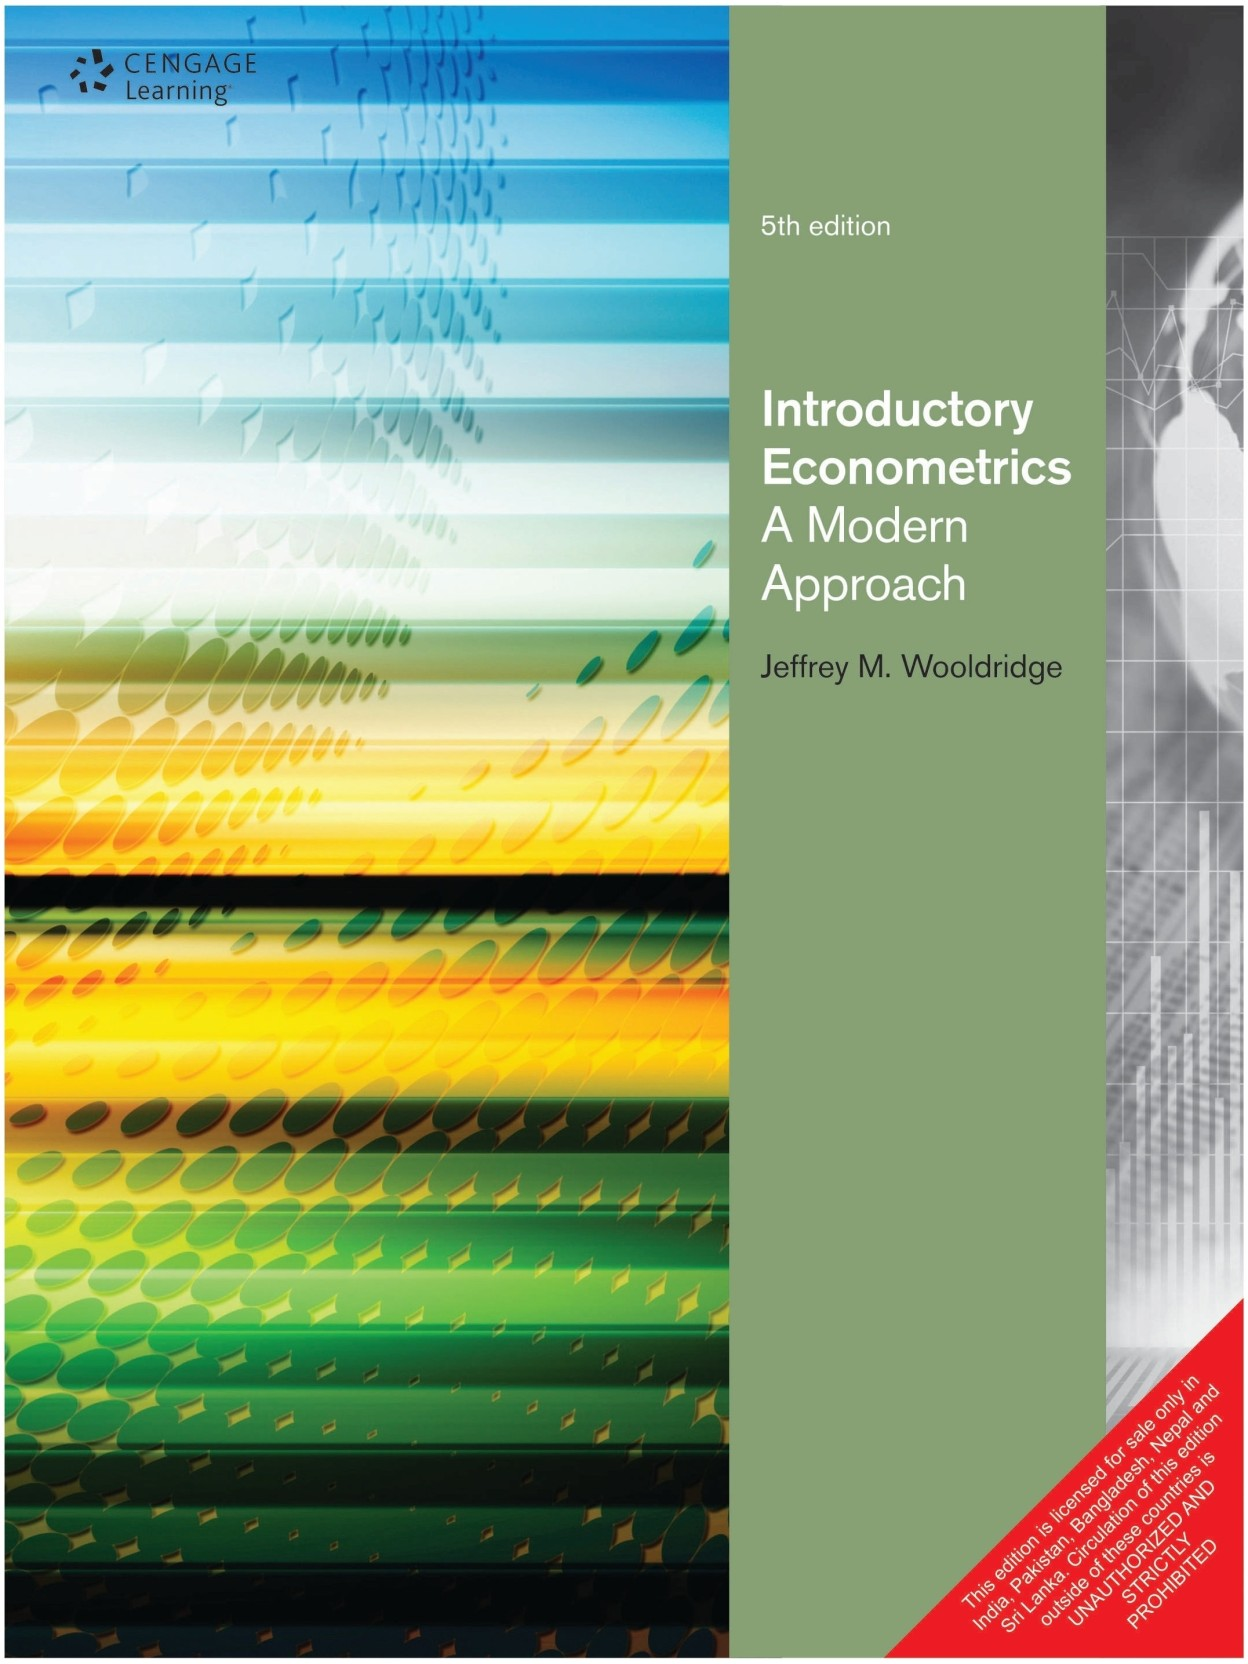 Introductory Econometrics - A Modern Approach 5th Edition. ADD TO CART